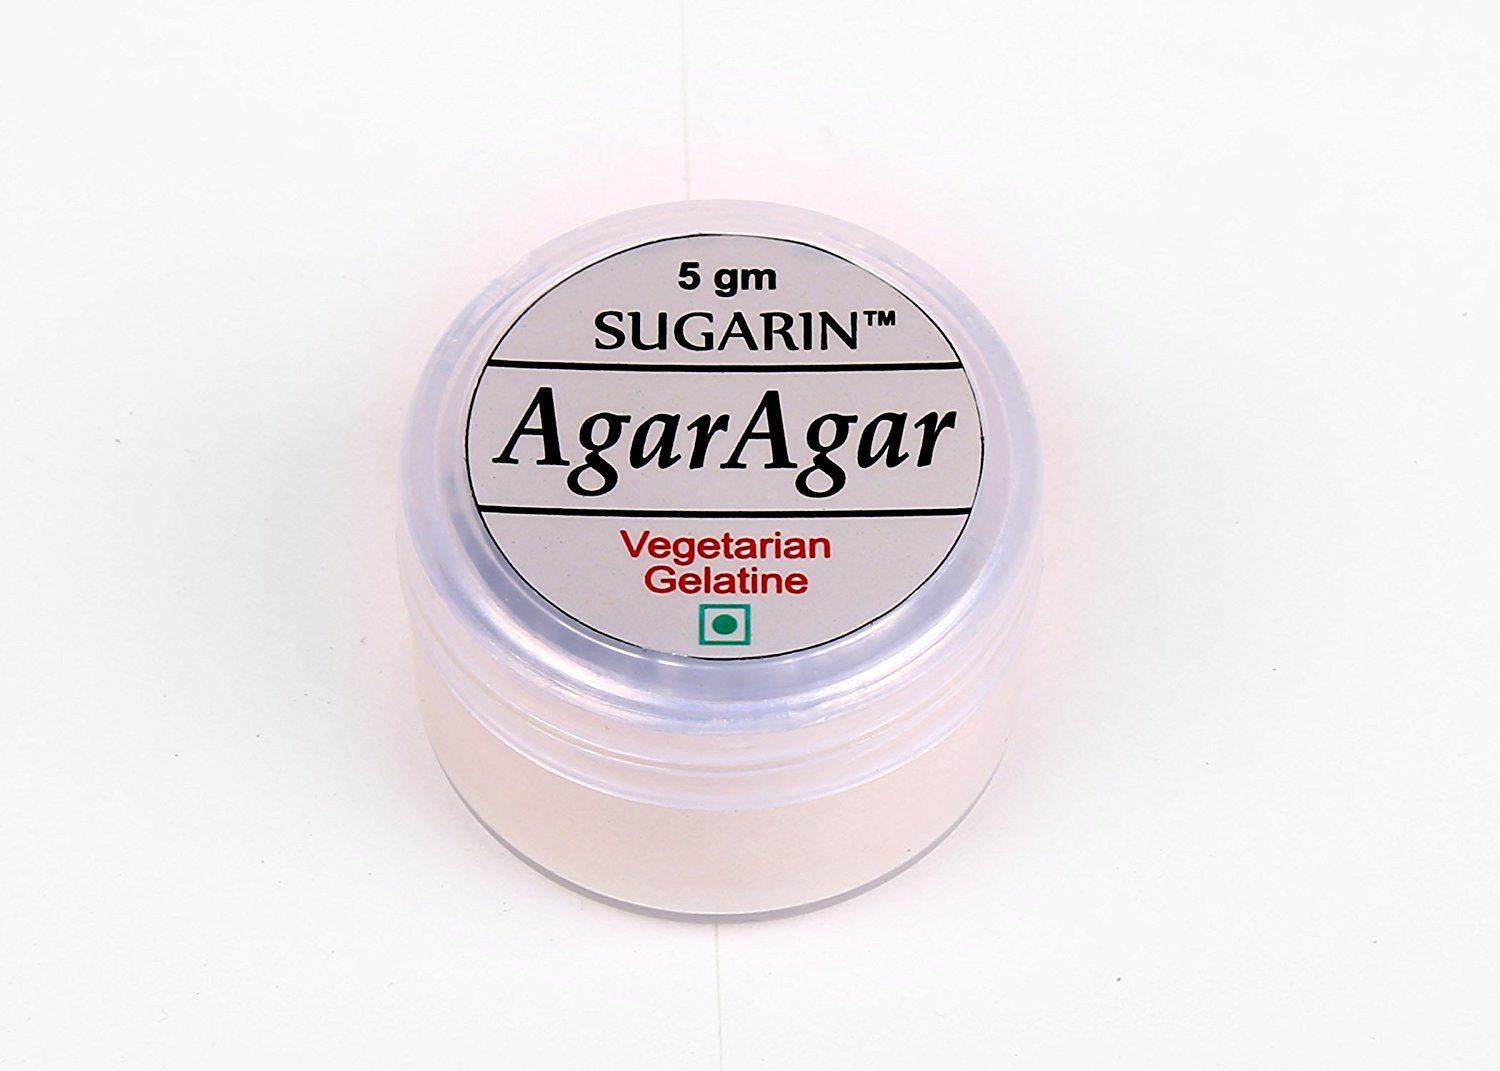 31696 Sugarin Agar Agar (Vegetarian Gelatine) for thickening of